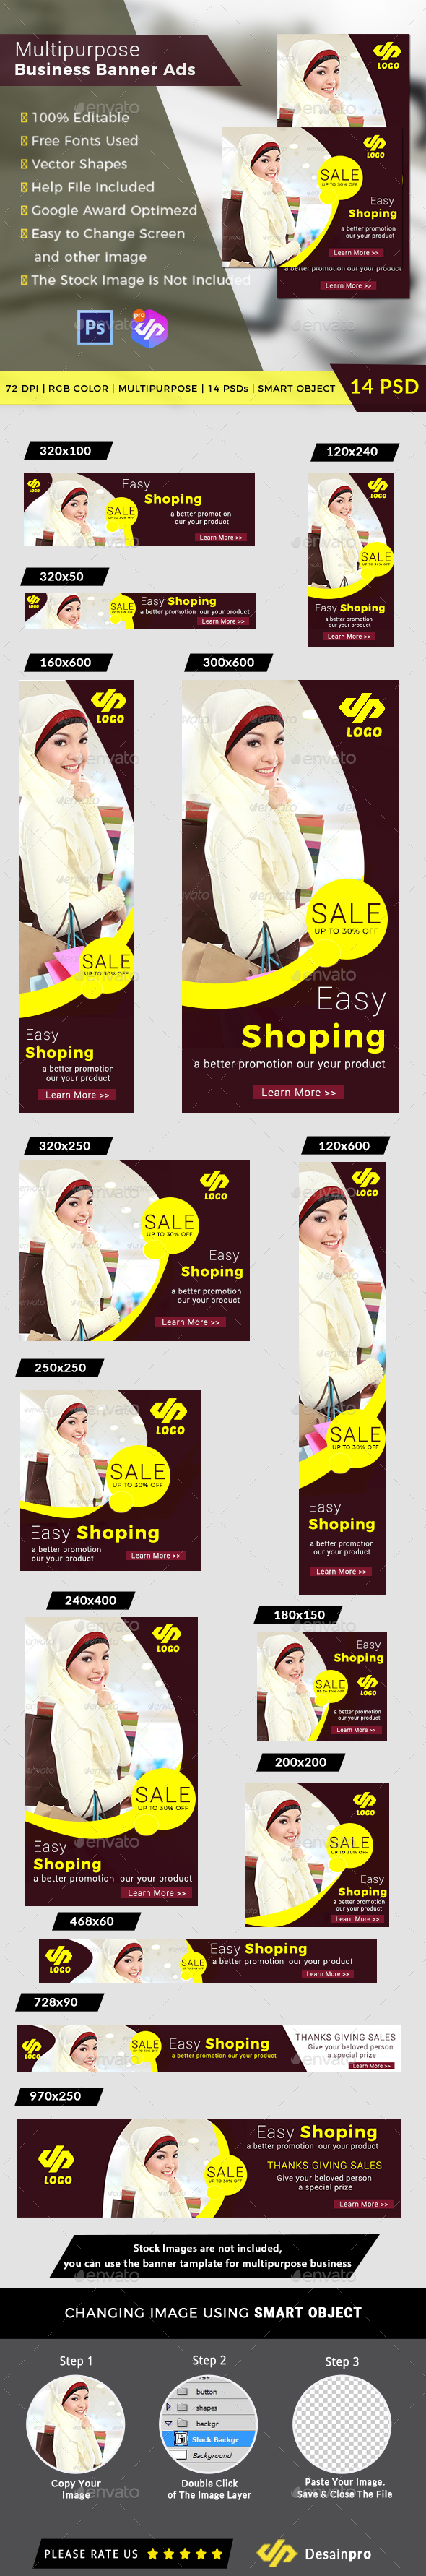 Fashion Shopping Ads Banner Template 14 Sizes - Banners & Ads Web Elements